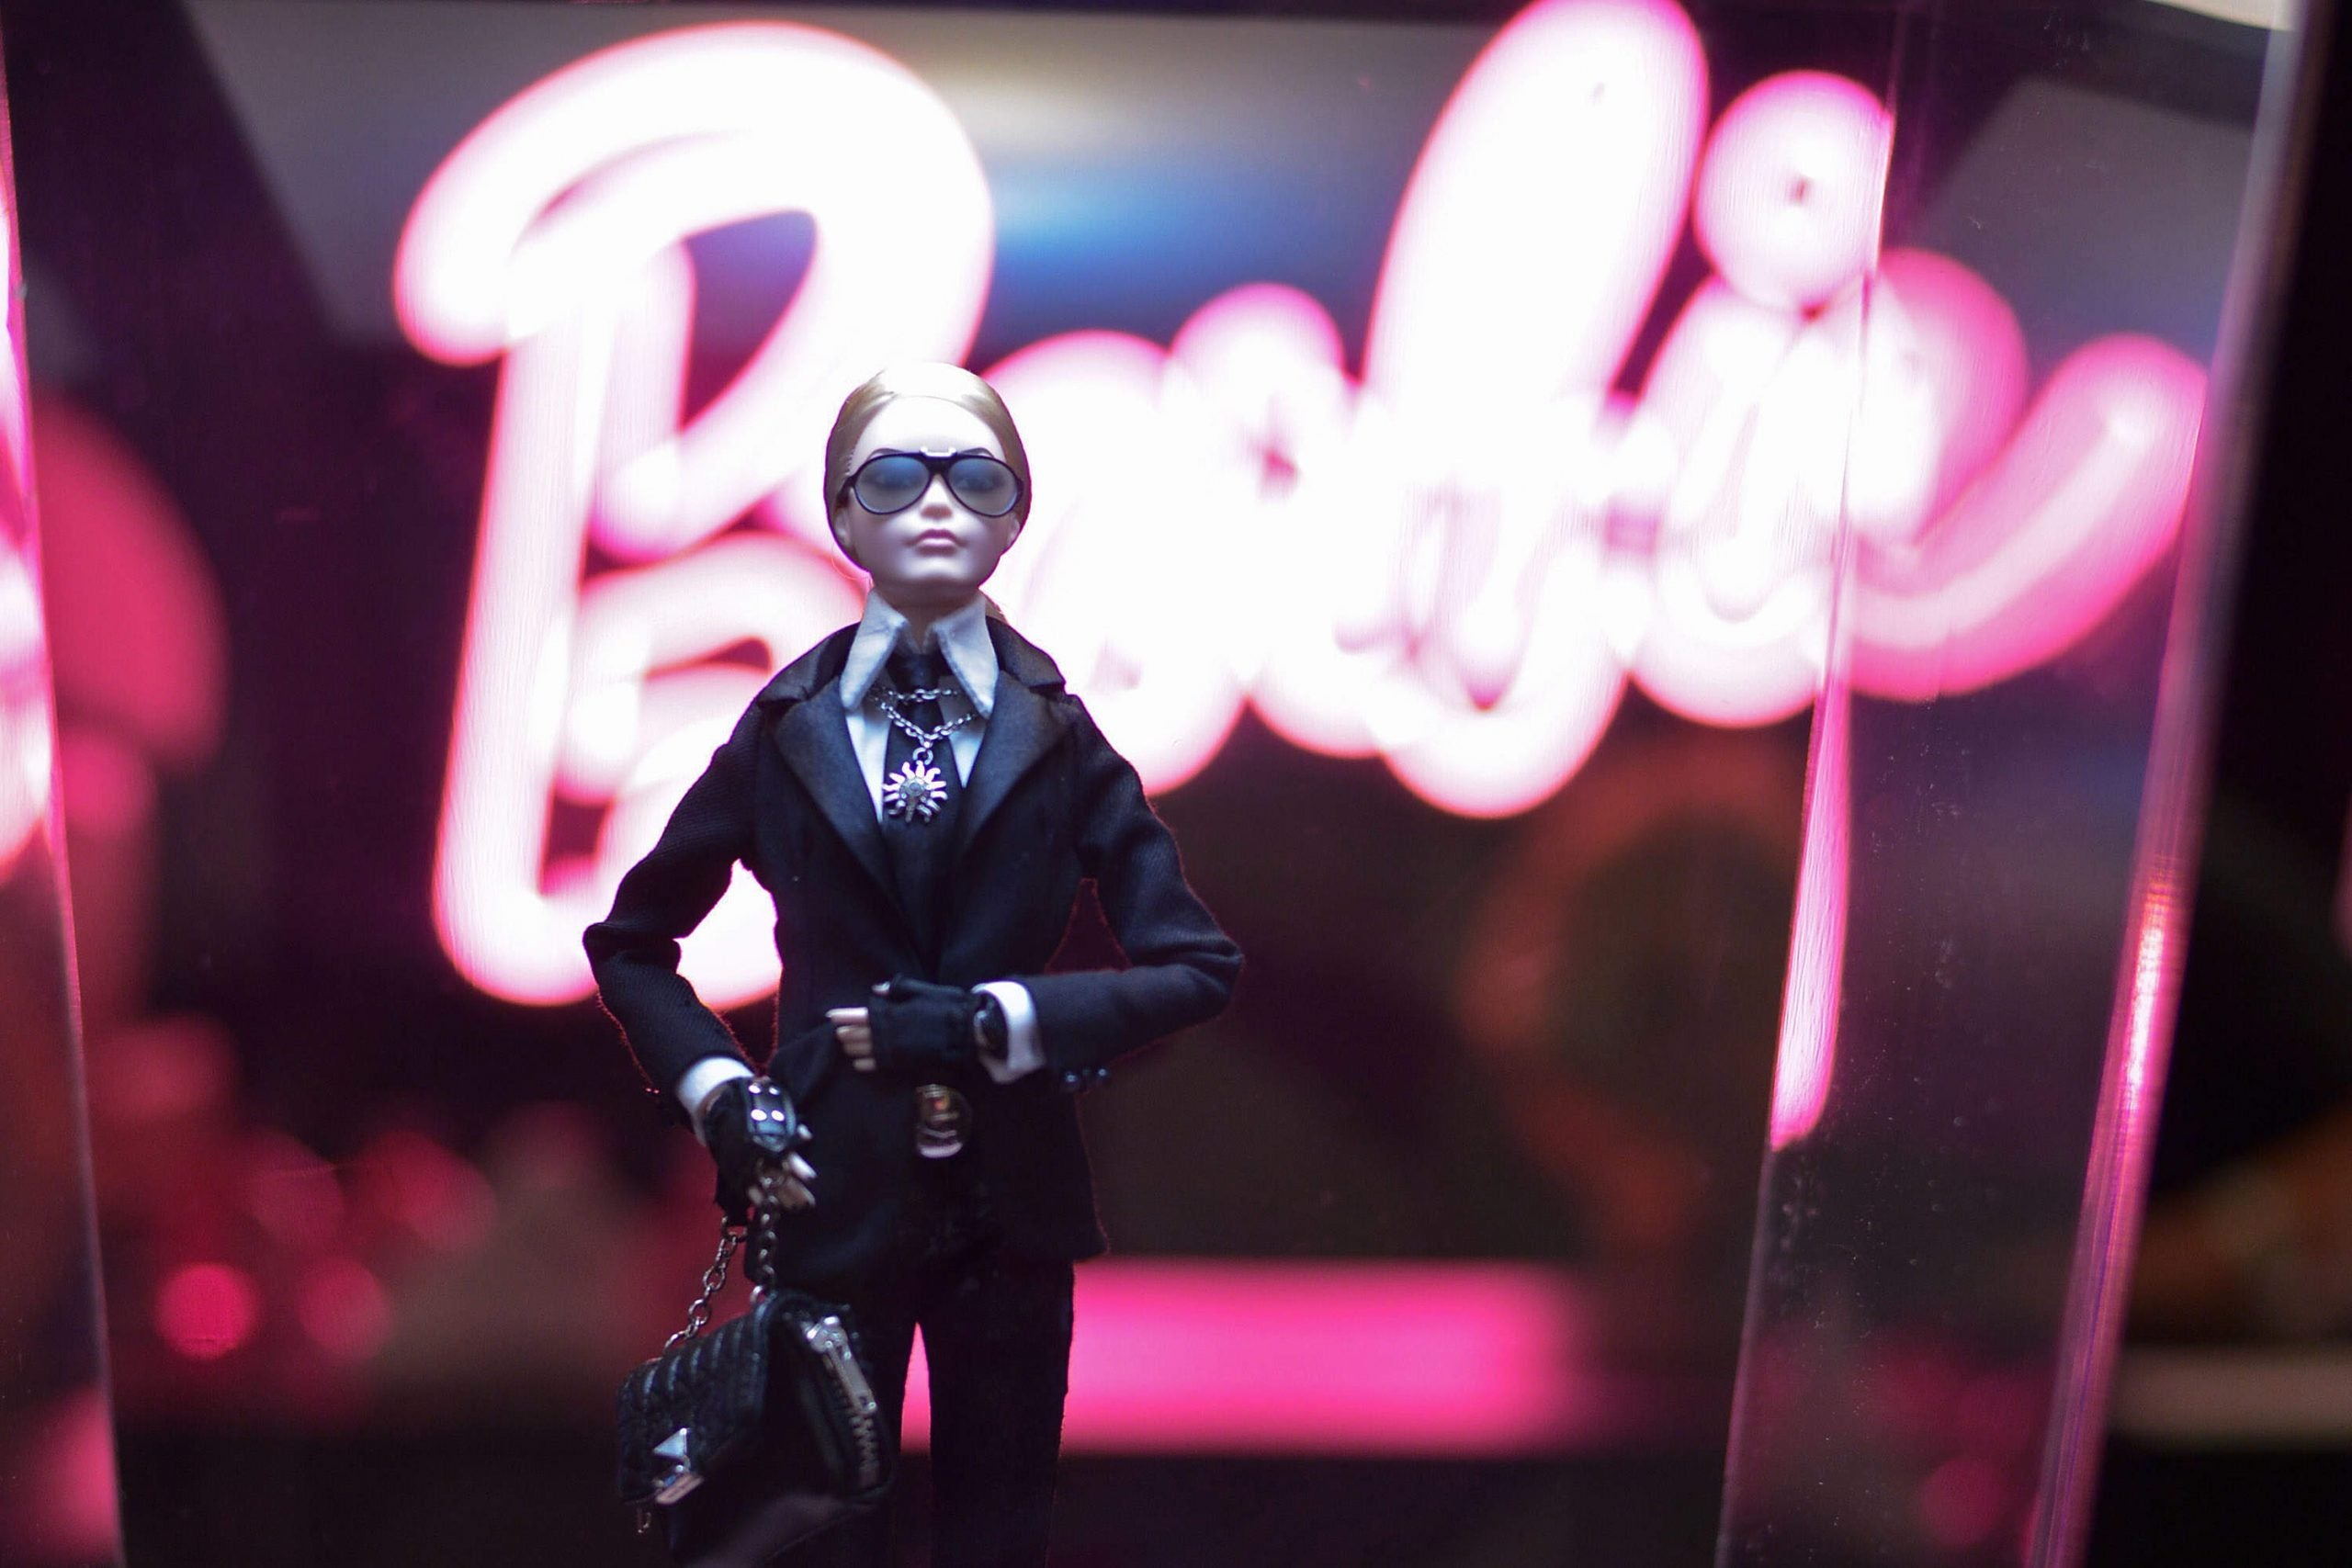 Barbie has a new look. Time to celebrate?